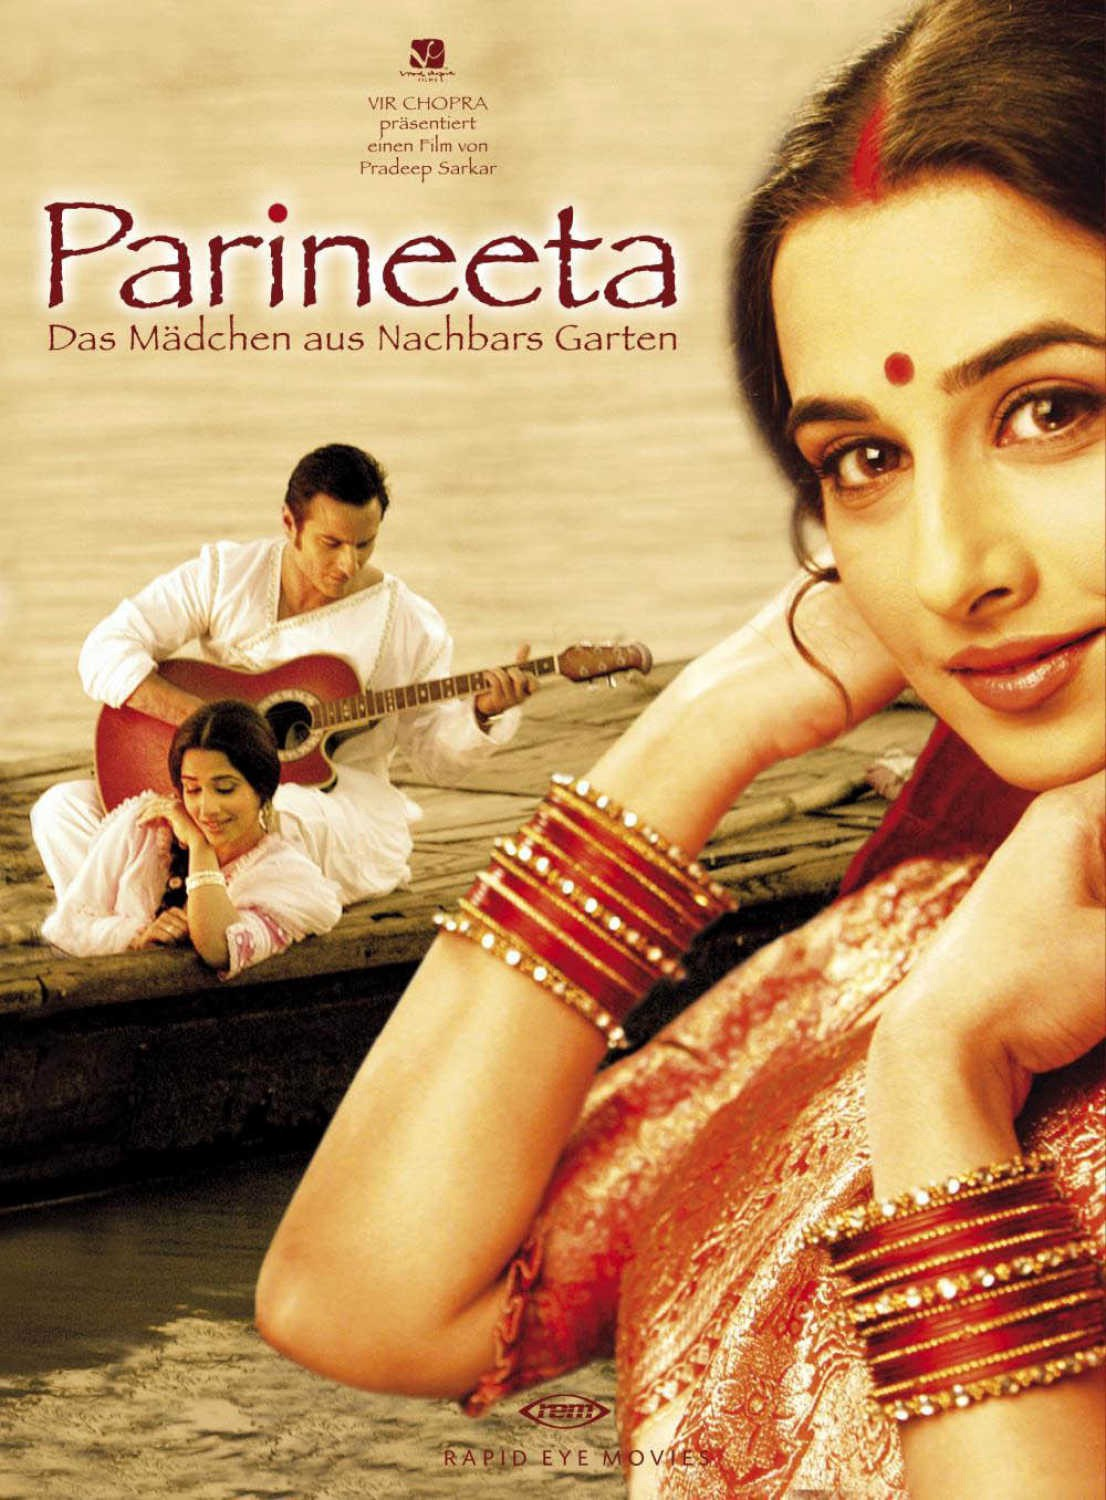 14 Years of Parineeta (10/06/2005) - Bollywoodirect - Medium